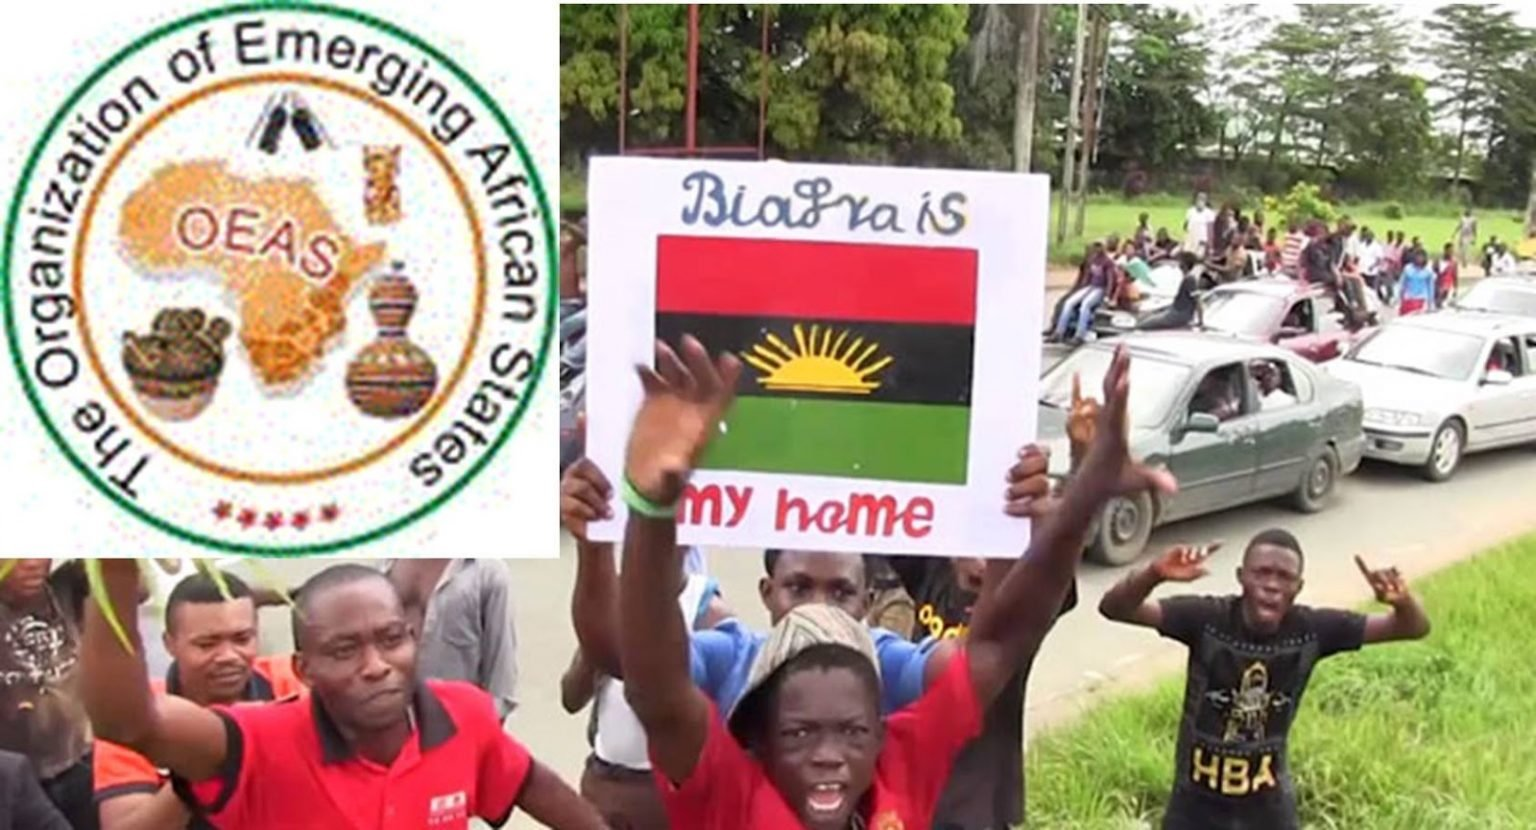 Biafra: OEAS gives Nigeria Government 90 days to conduct referendum, others